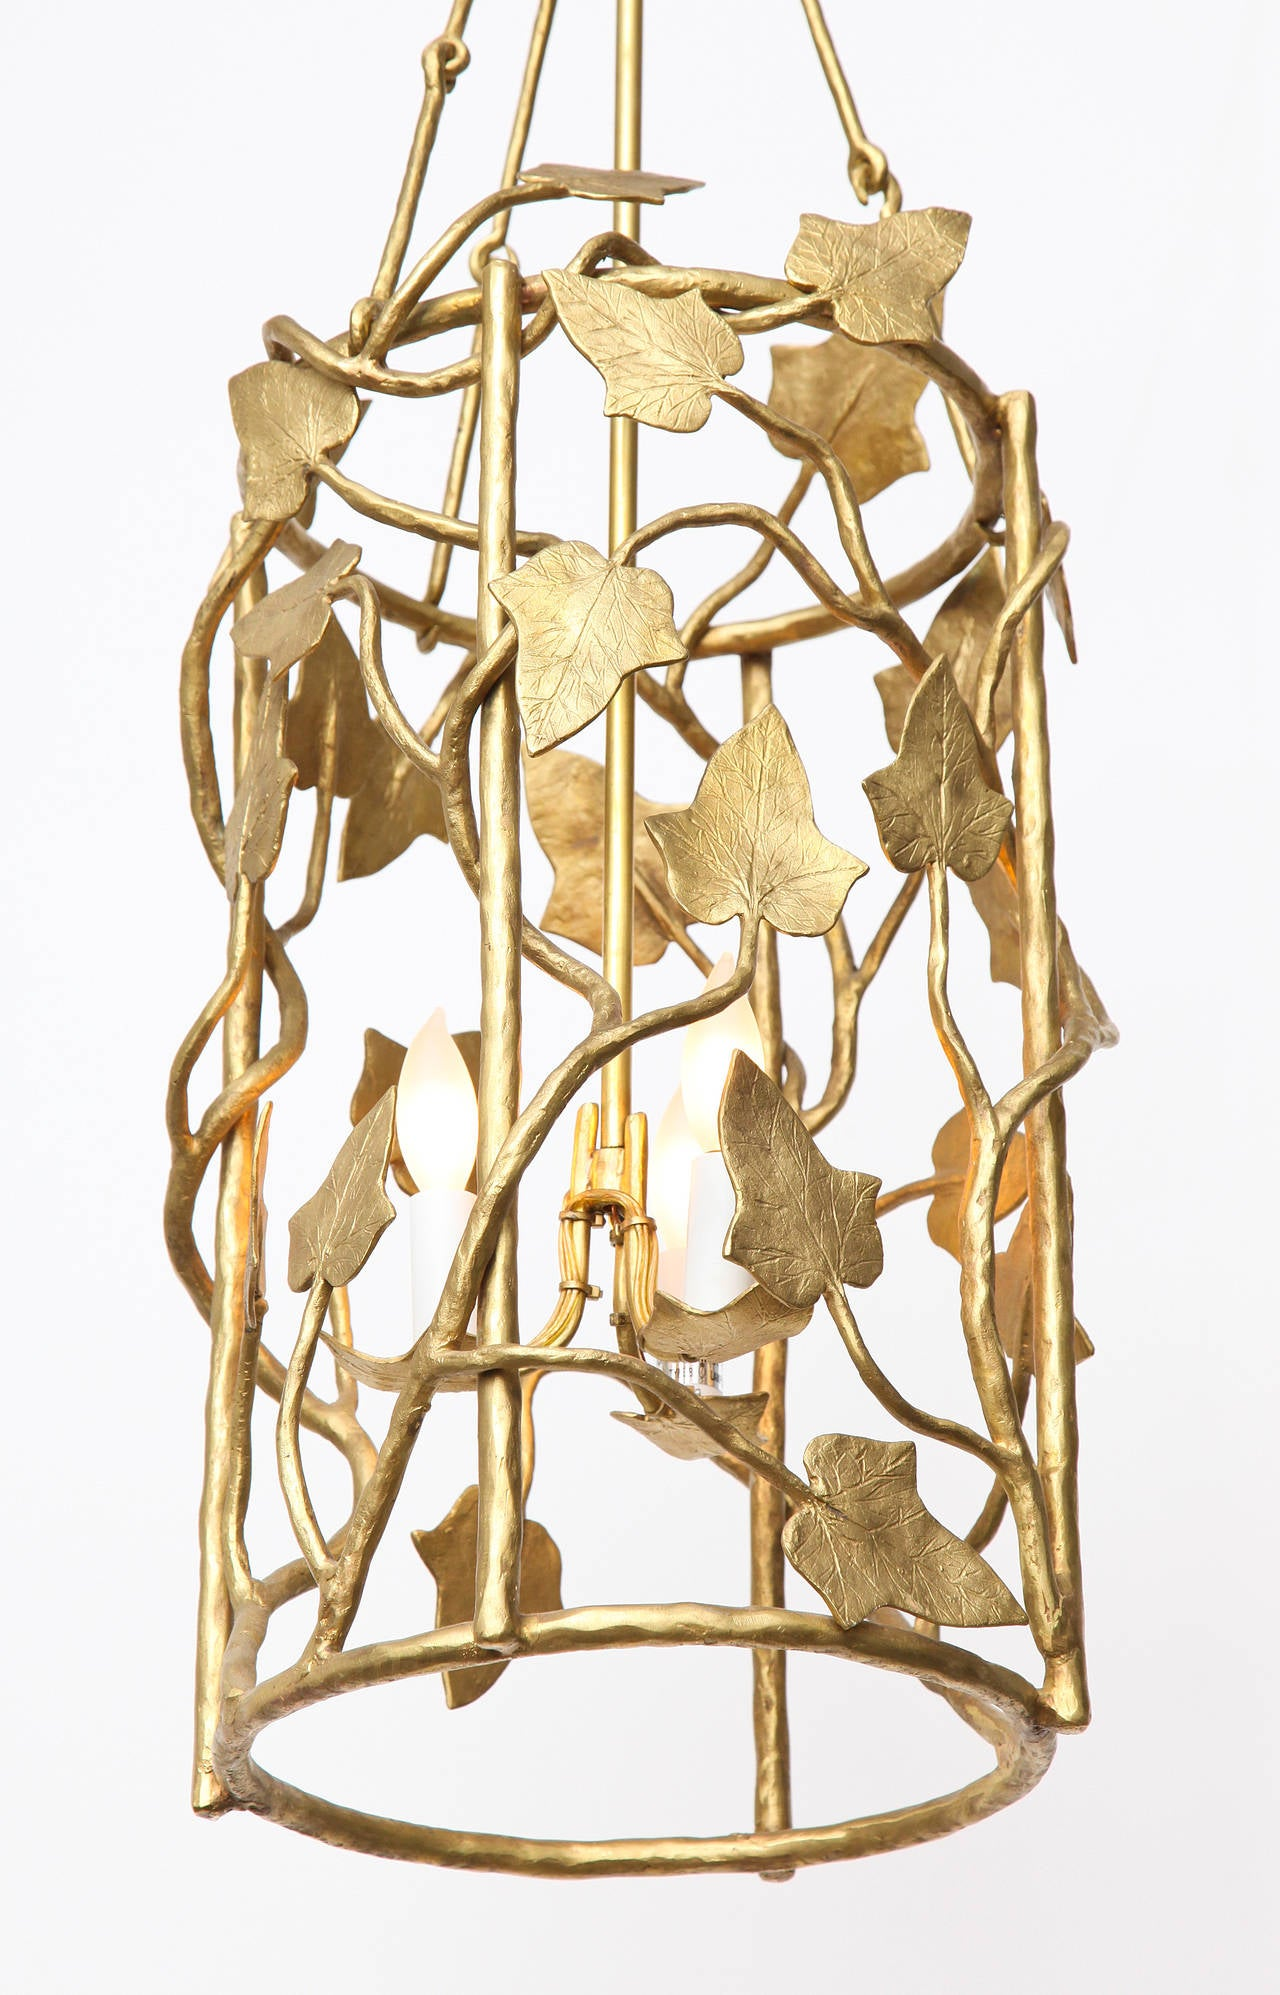 Polished bronze lantern by Marc Bankowsky.  Overall drop: 35'' Diameter of cylinder: 11'' Height of cage (cylinder): 19'' Height of canopy: 5.25